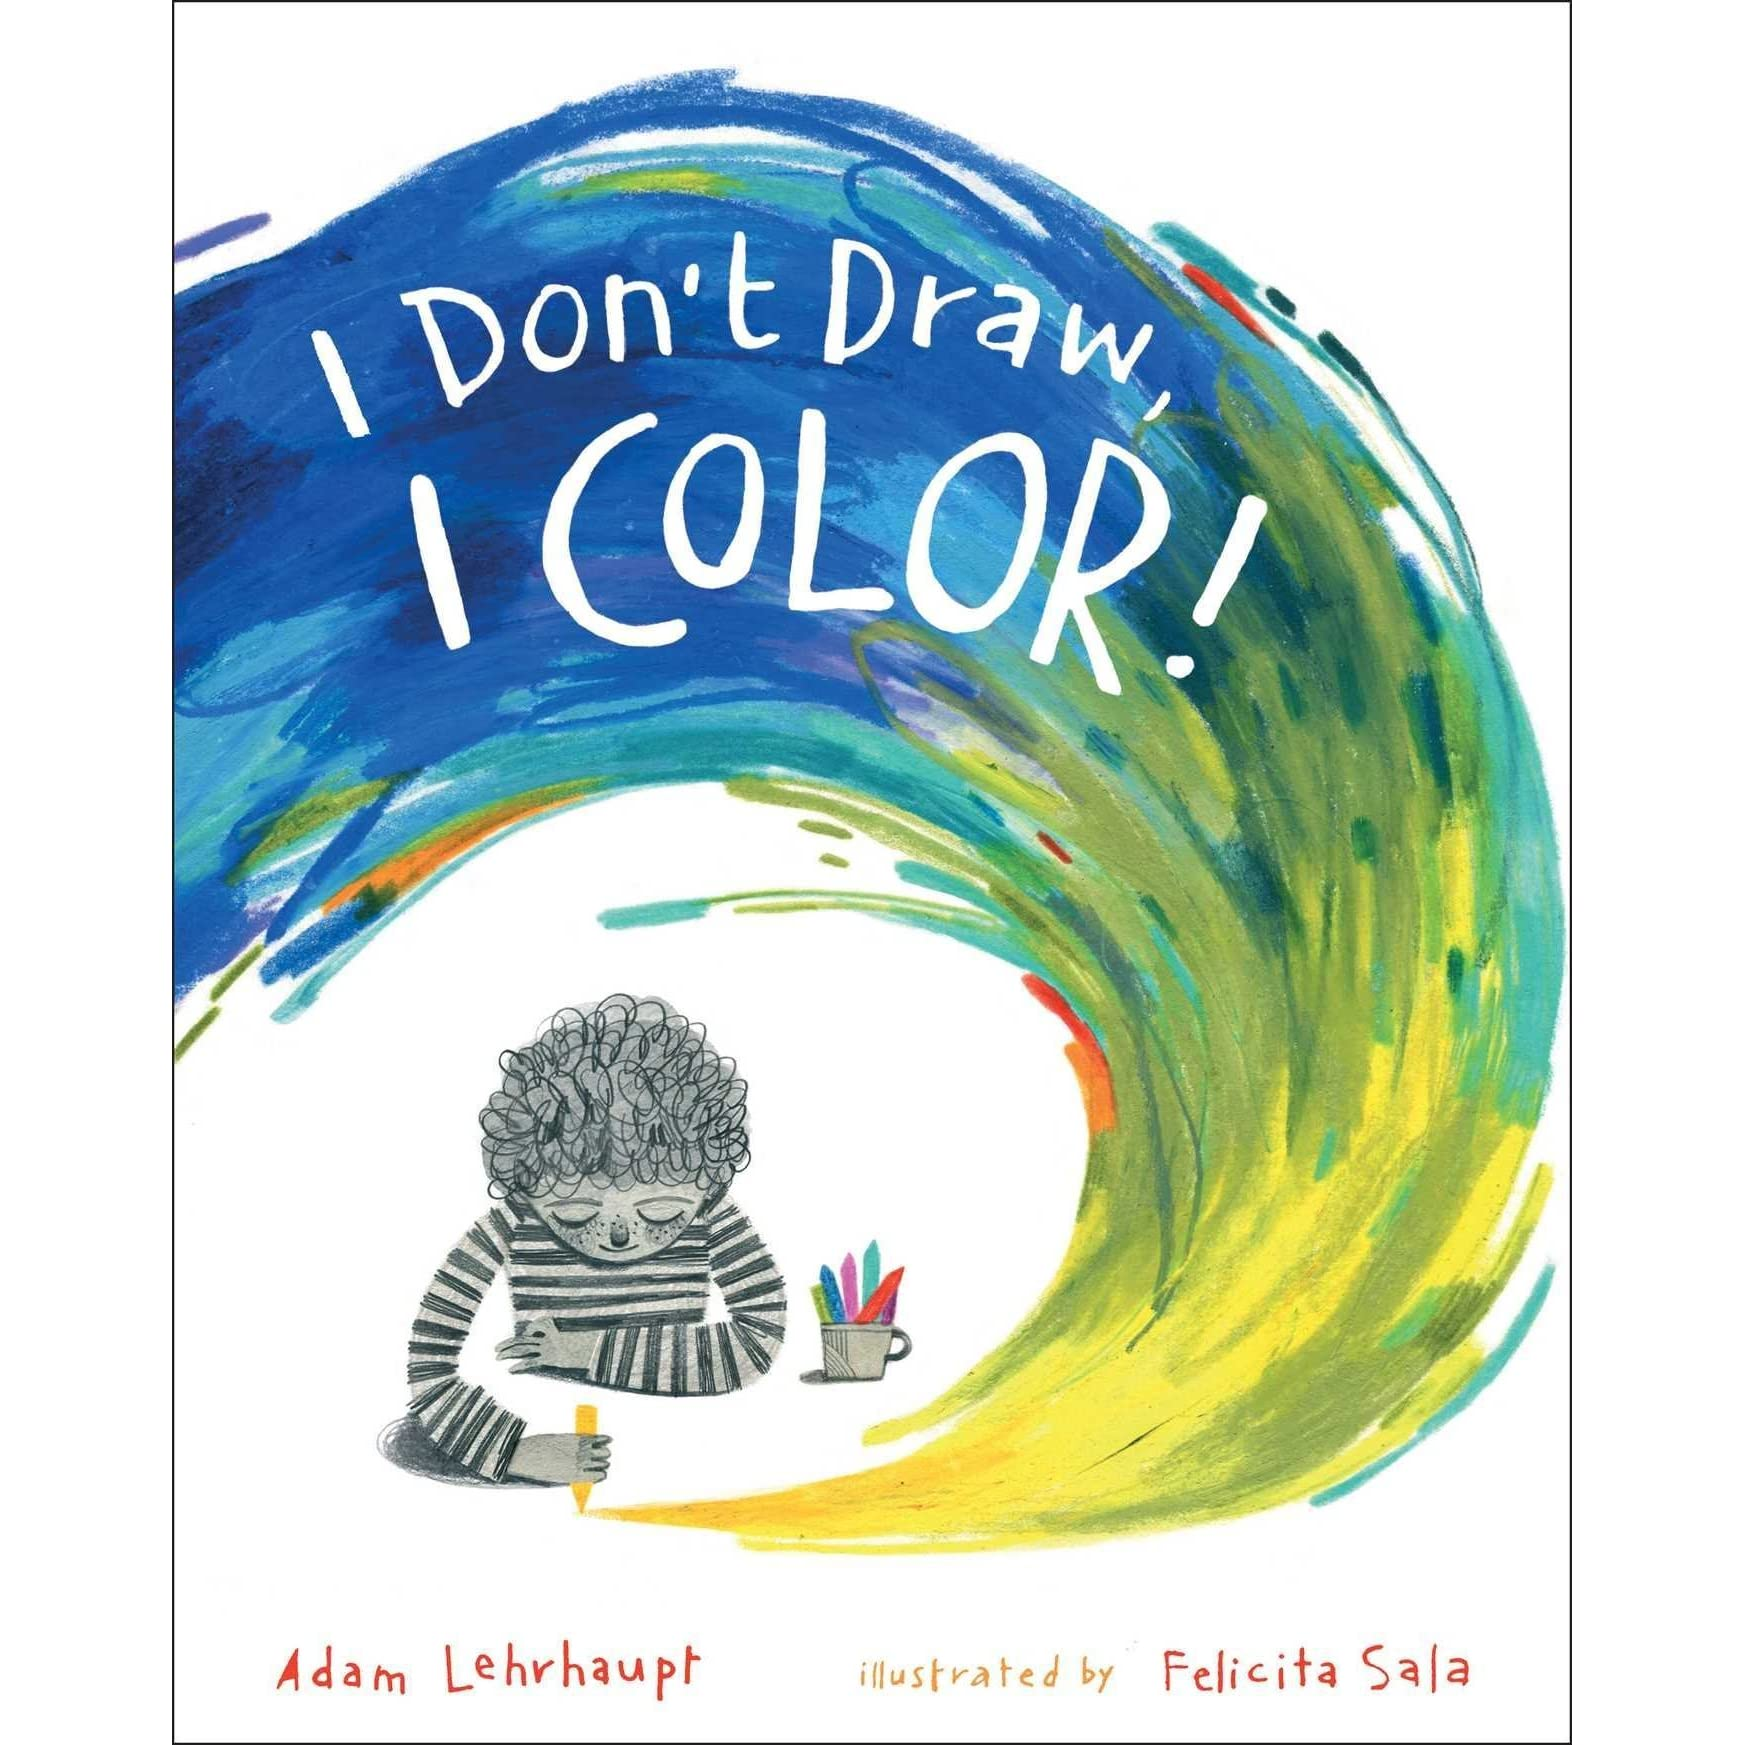 I Don\'t Draw, I Color! by Adam Lehrhaupt